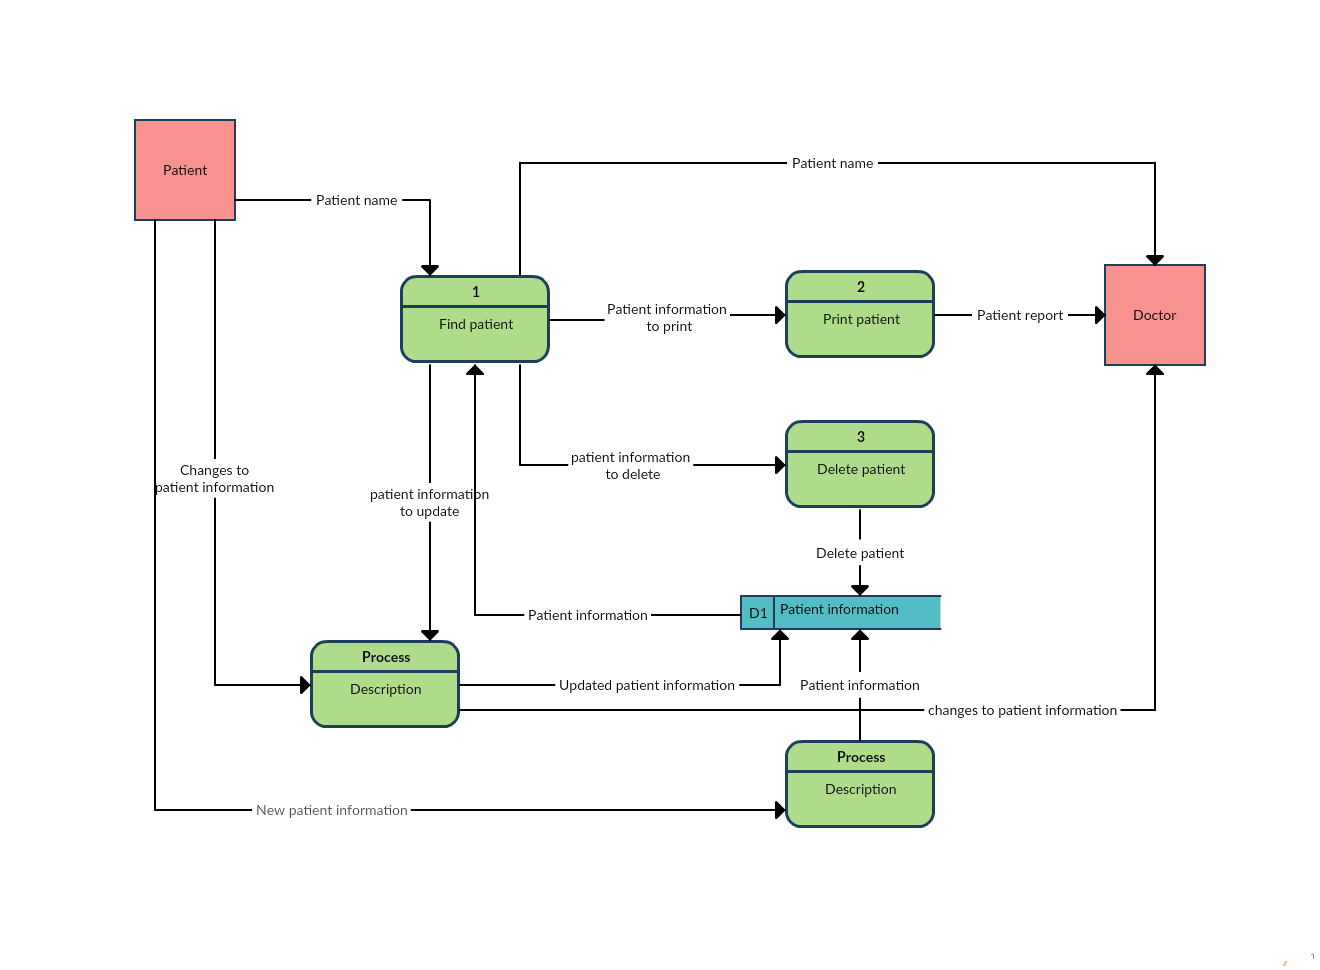 Data flow diagram templates to map data flows creately blog data flow diagram template of a patient information system ccuart Images